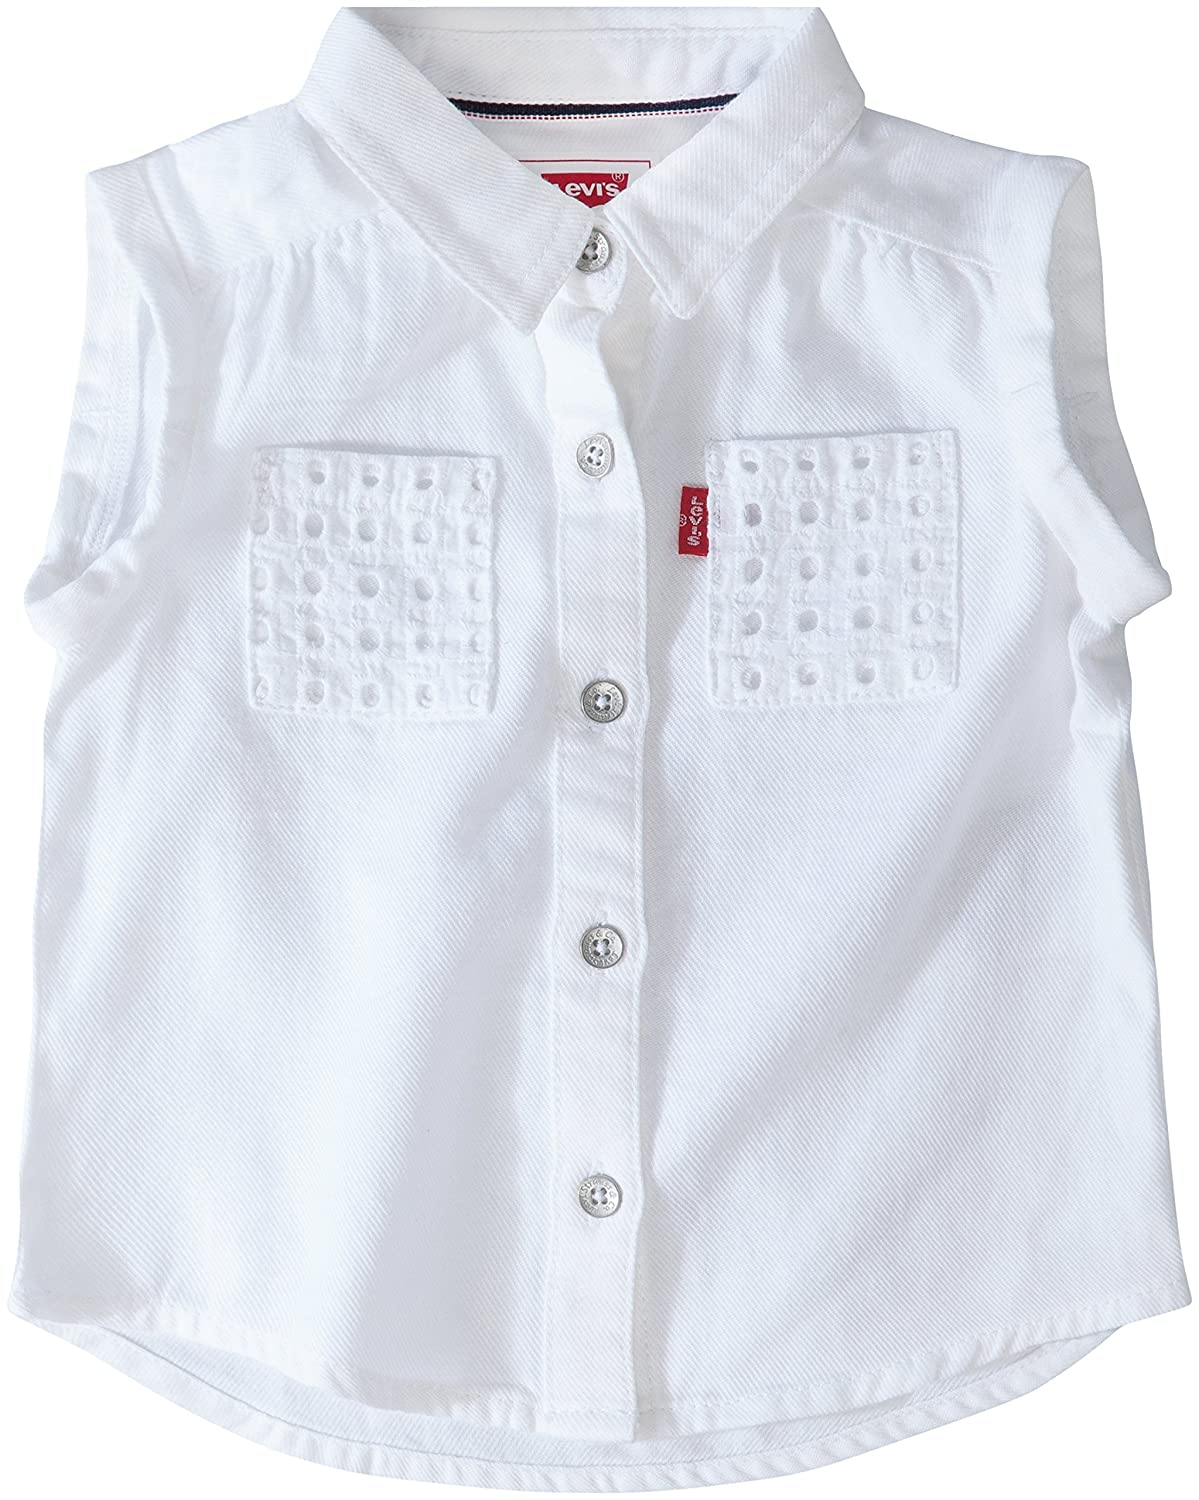 Levi's Baby Girls' Short Sleeve Shirt 114337